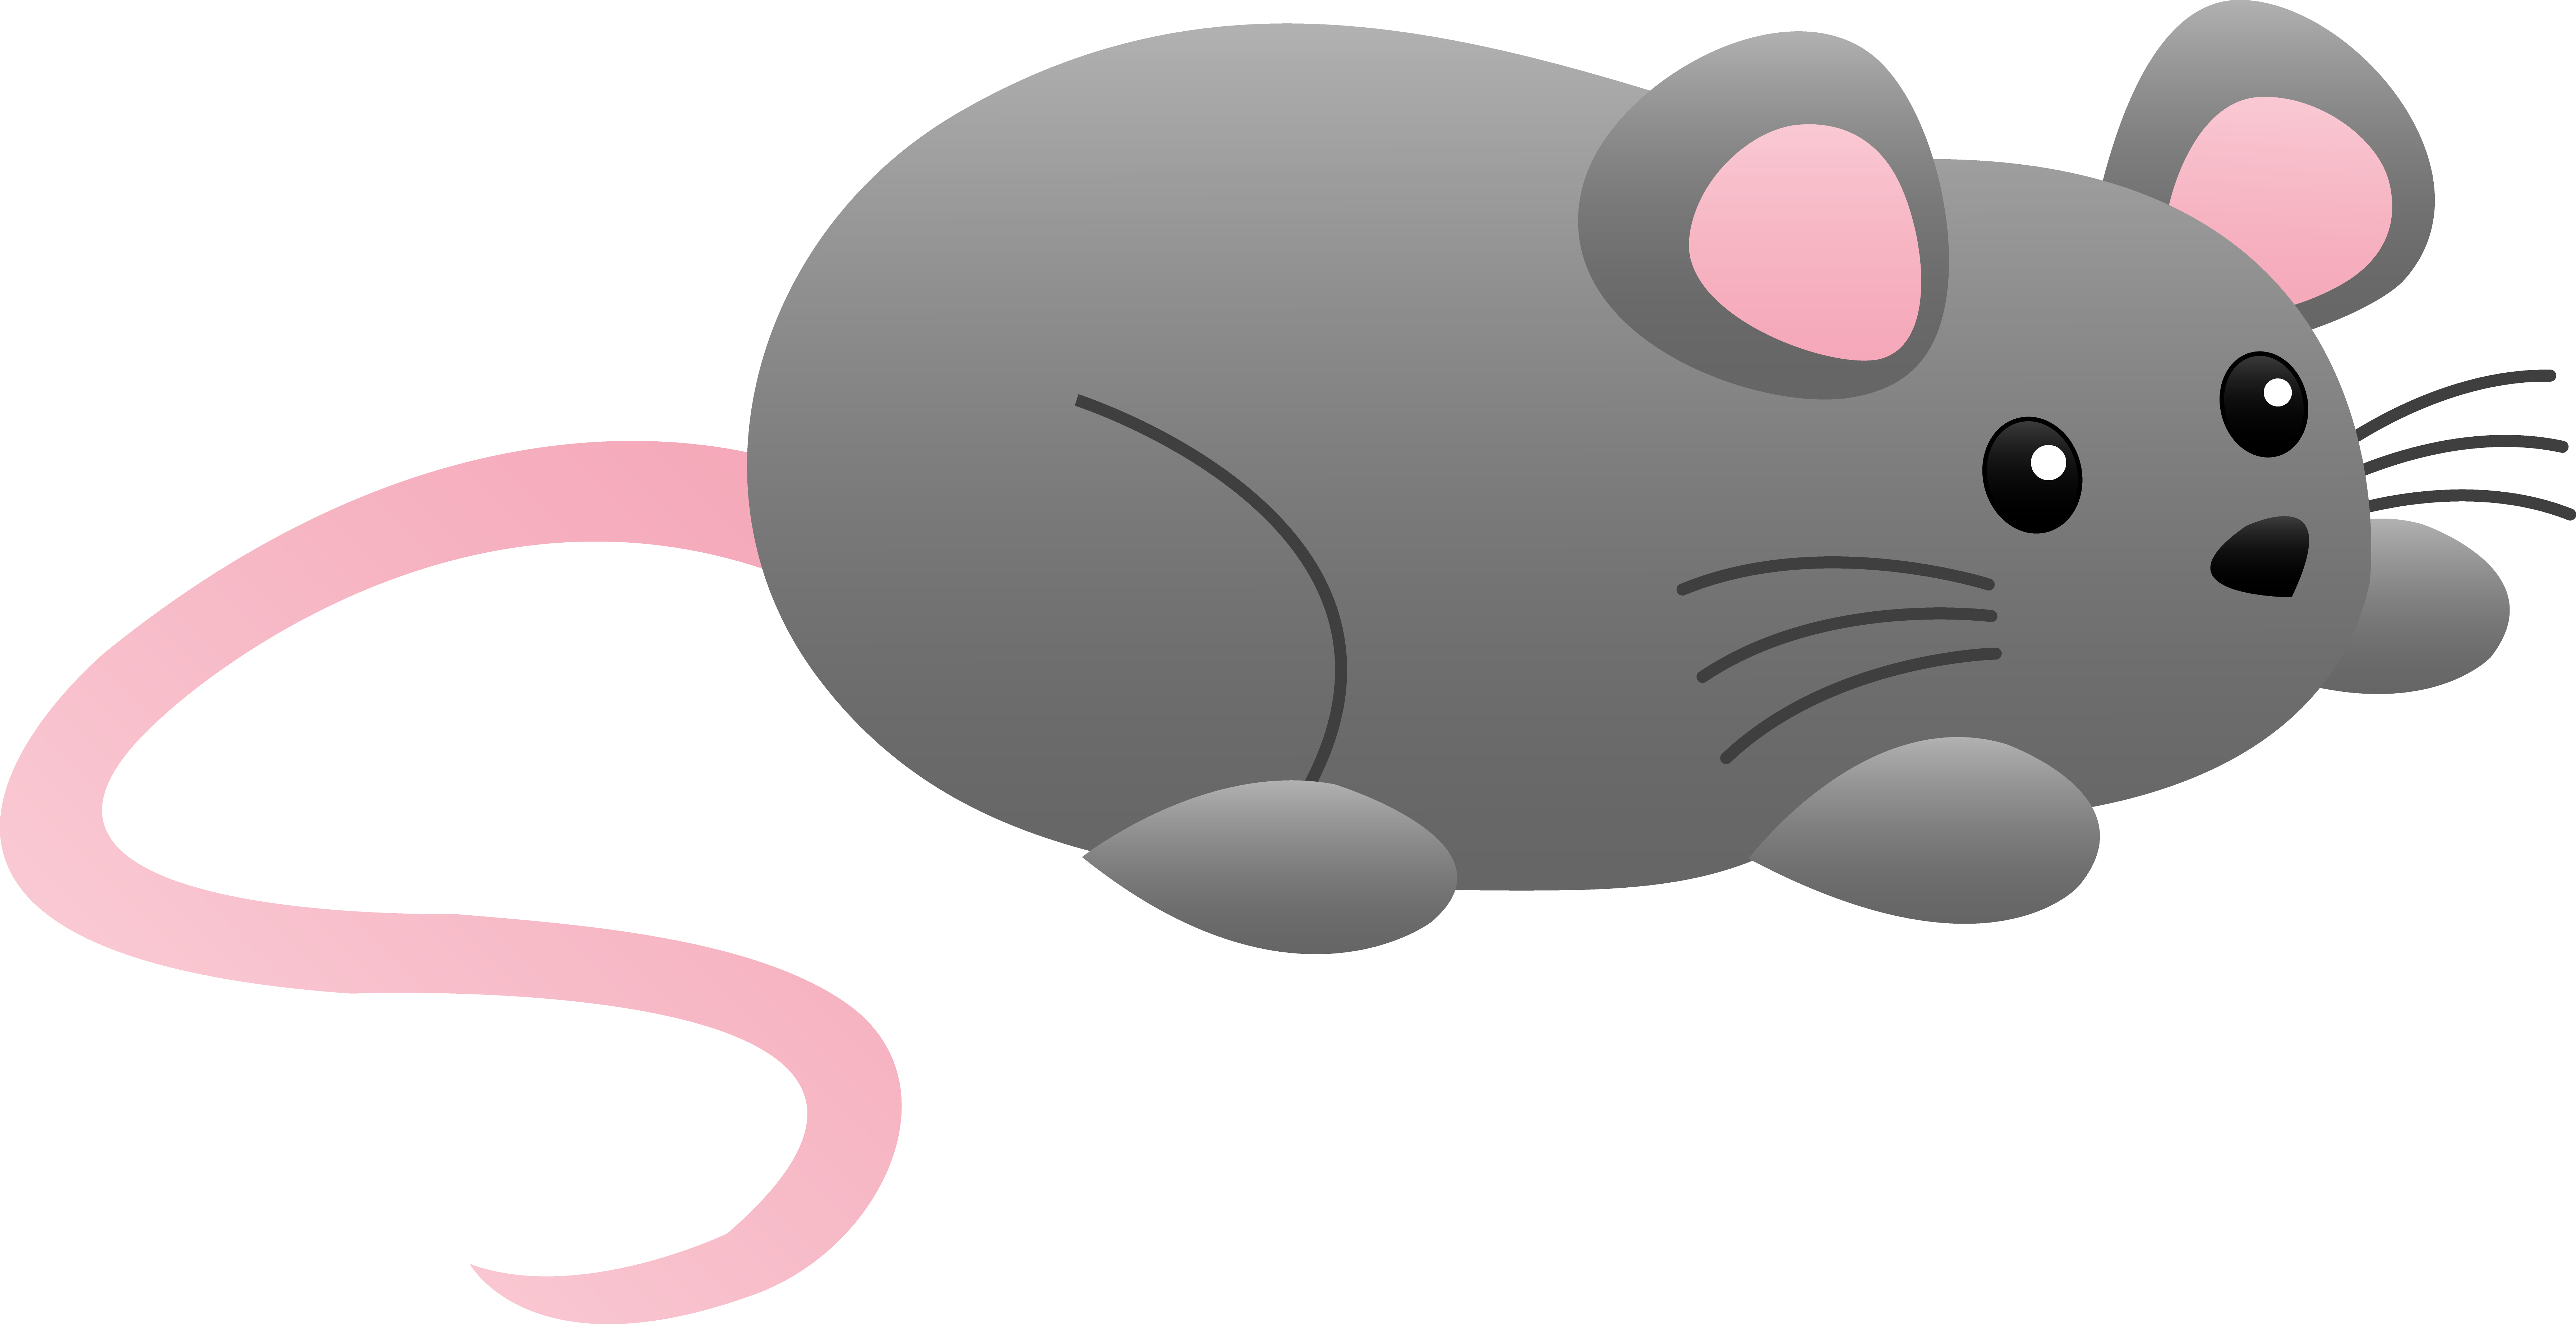 Mouse free clipart